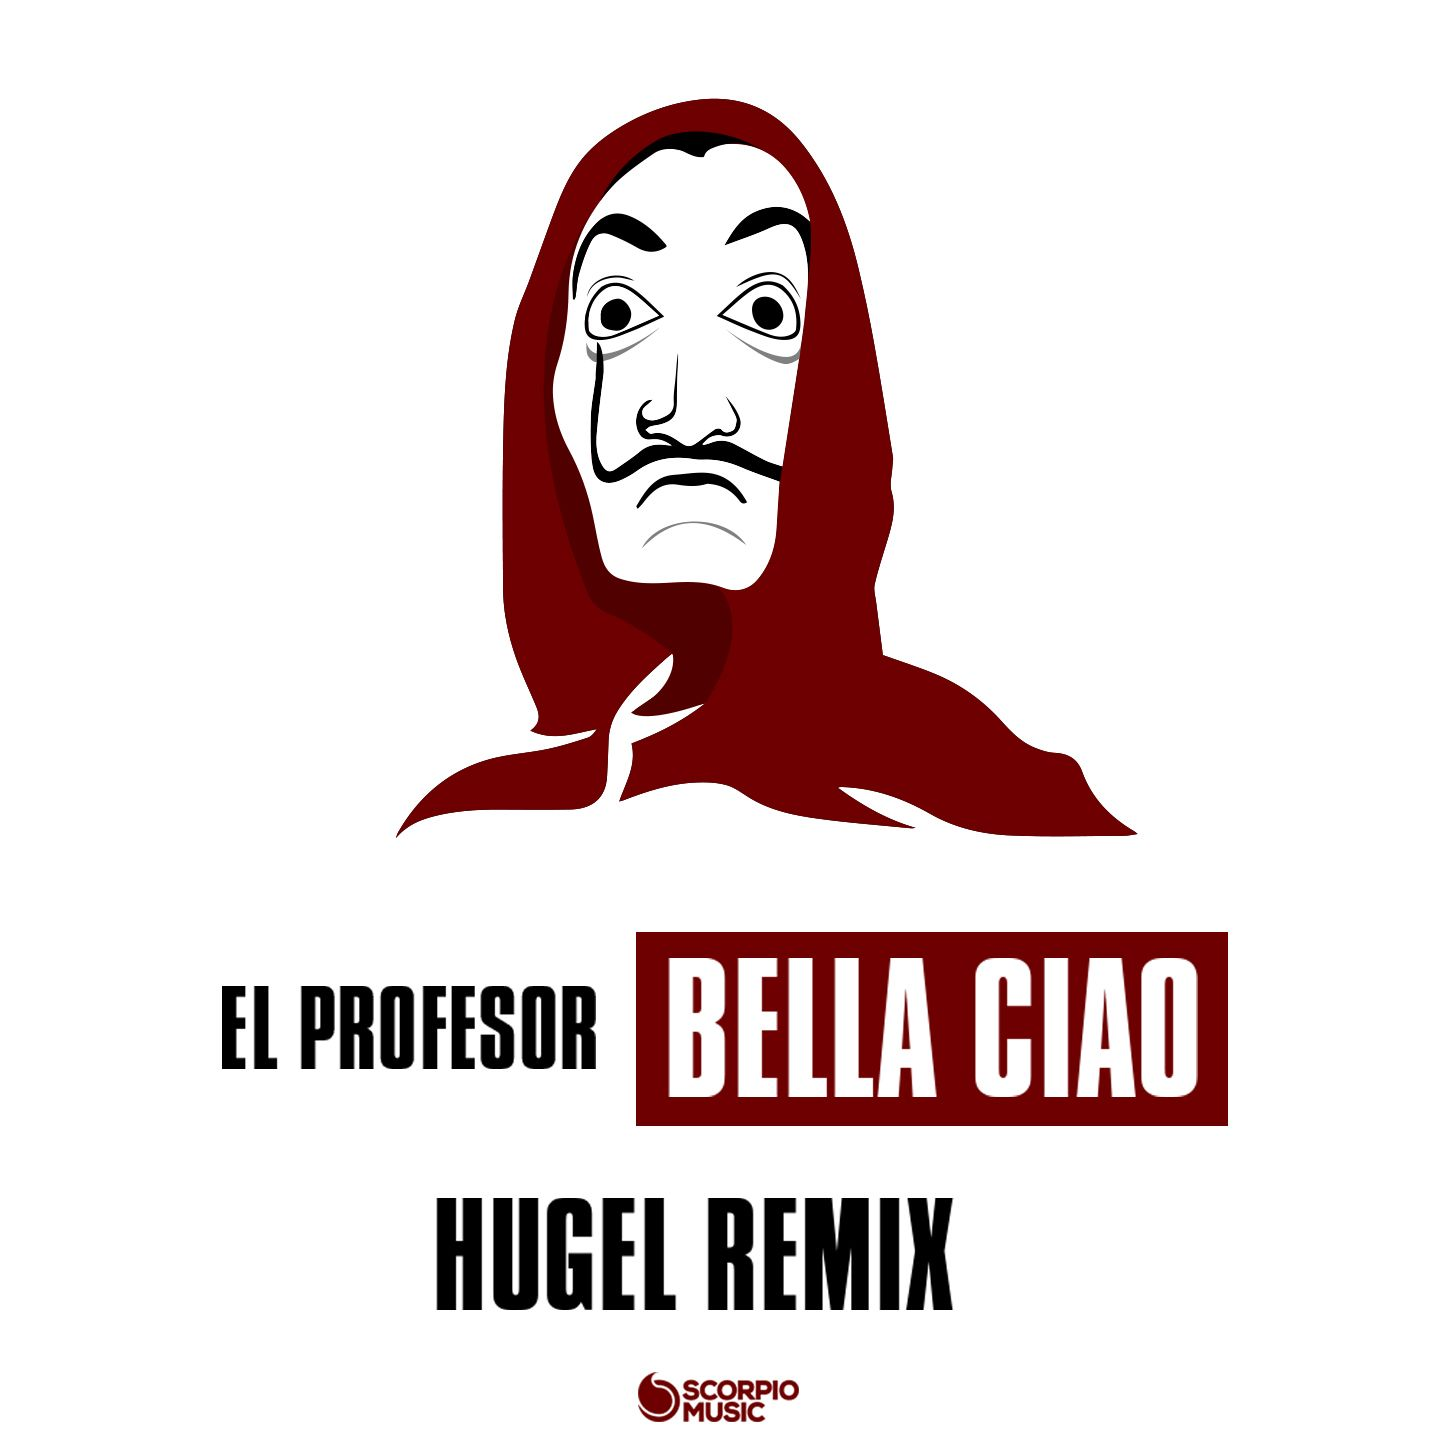 Housemusic Bella Ciao Hugel Remix The Track That Amassed